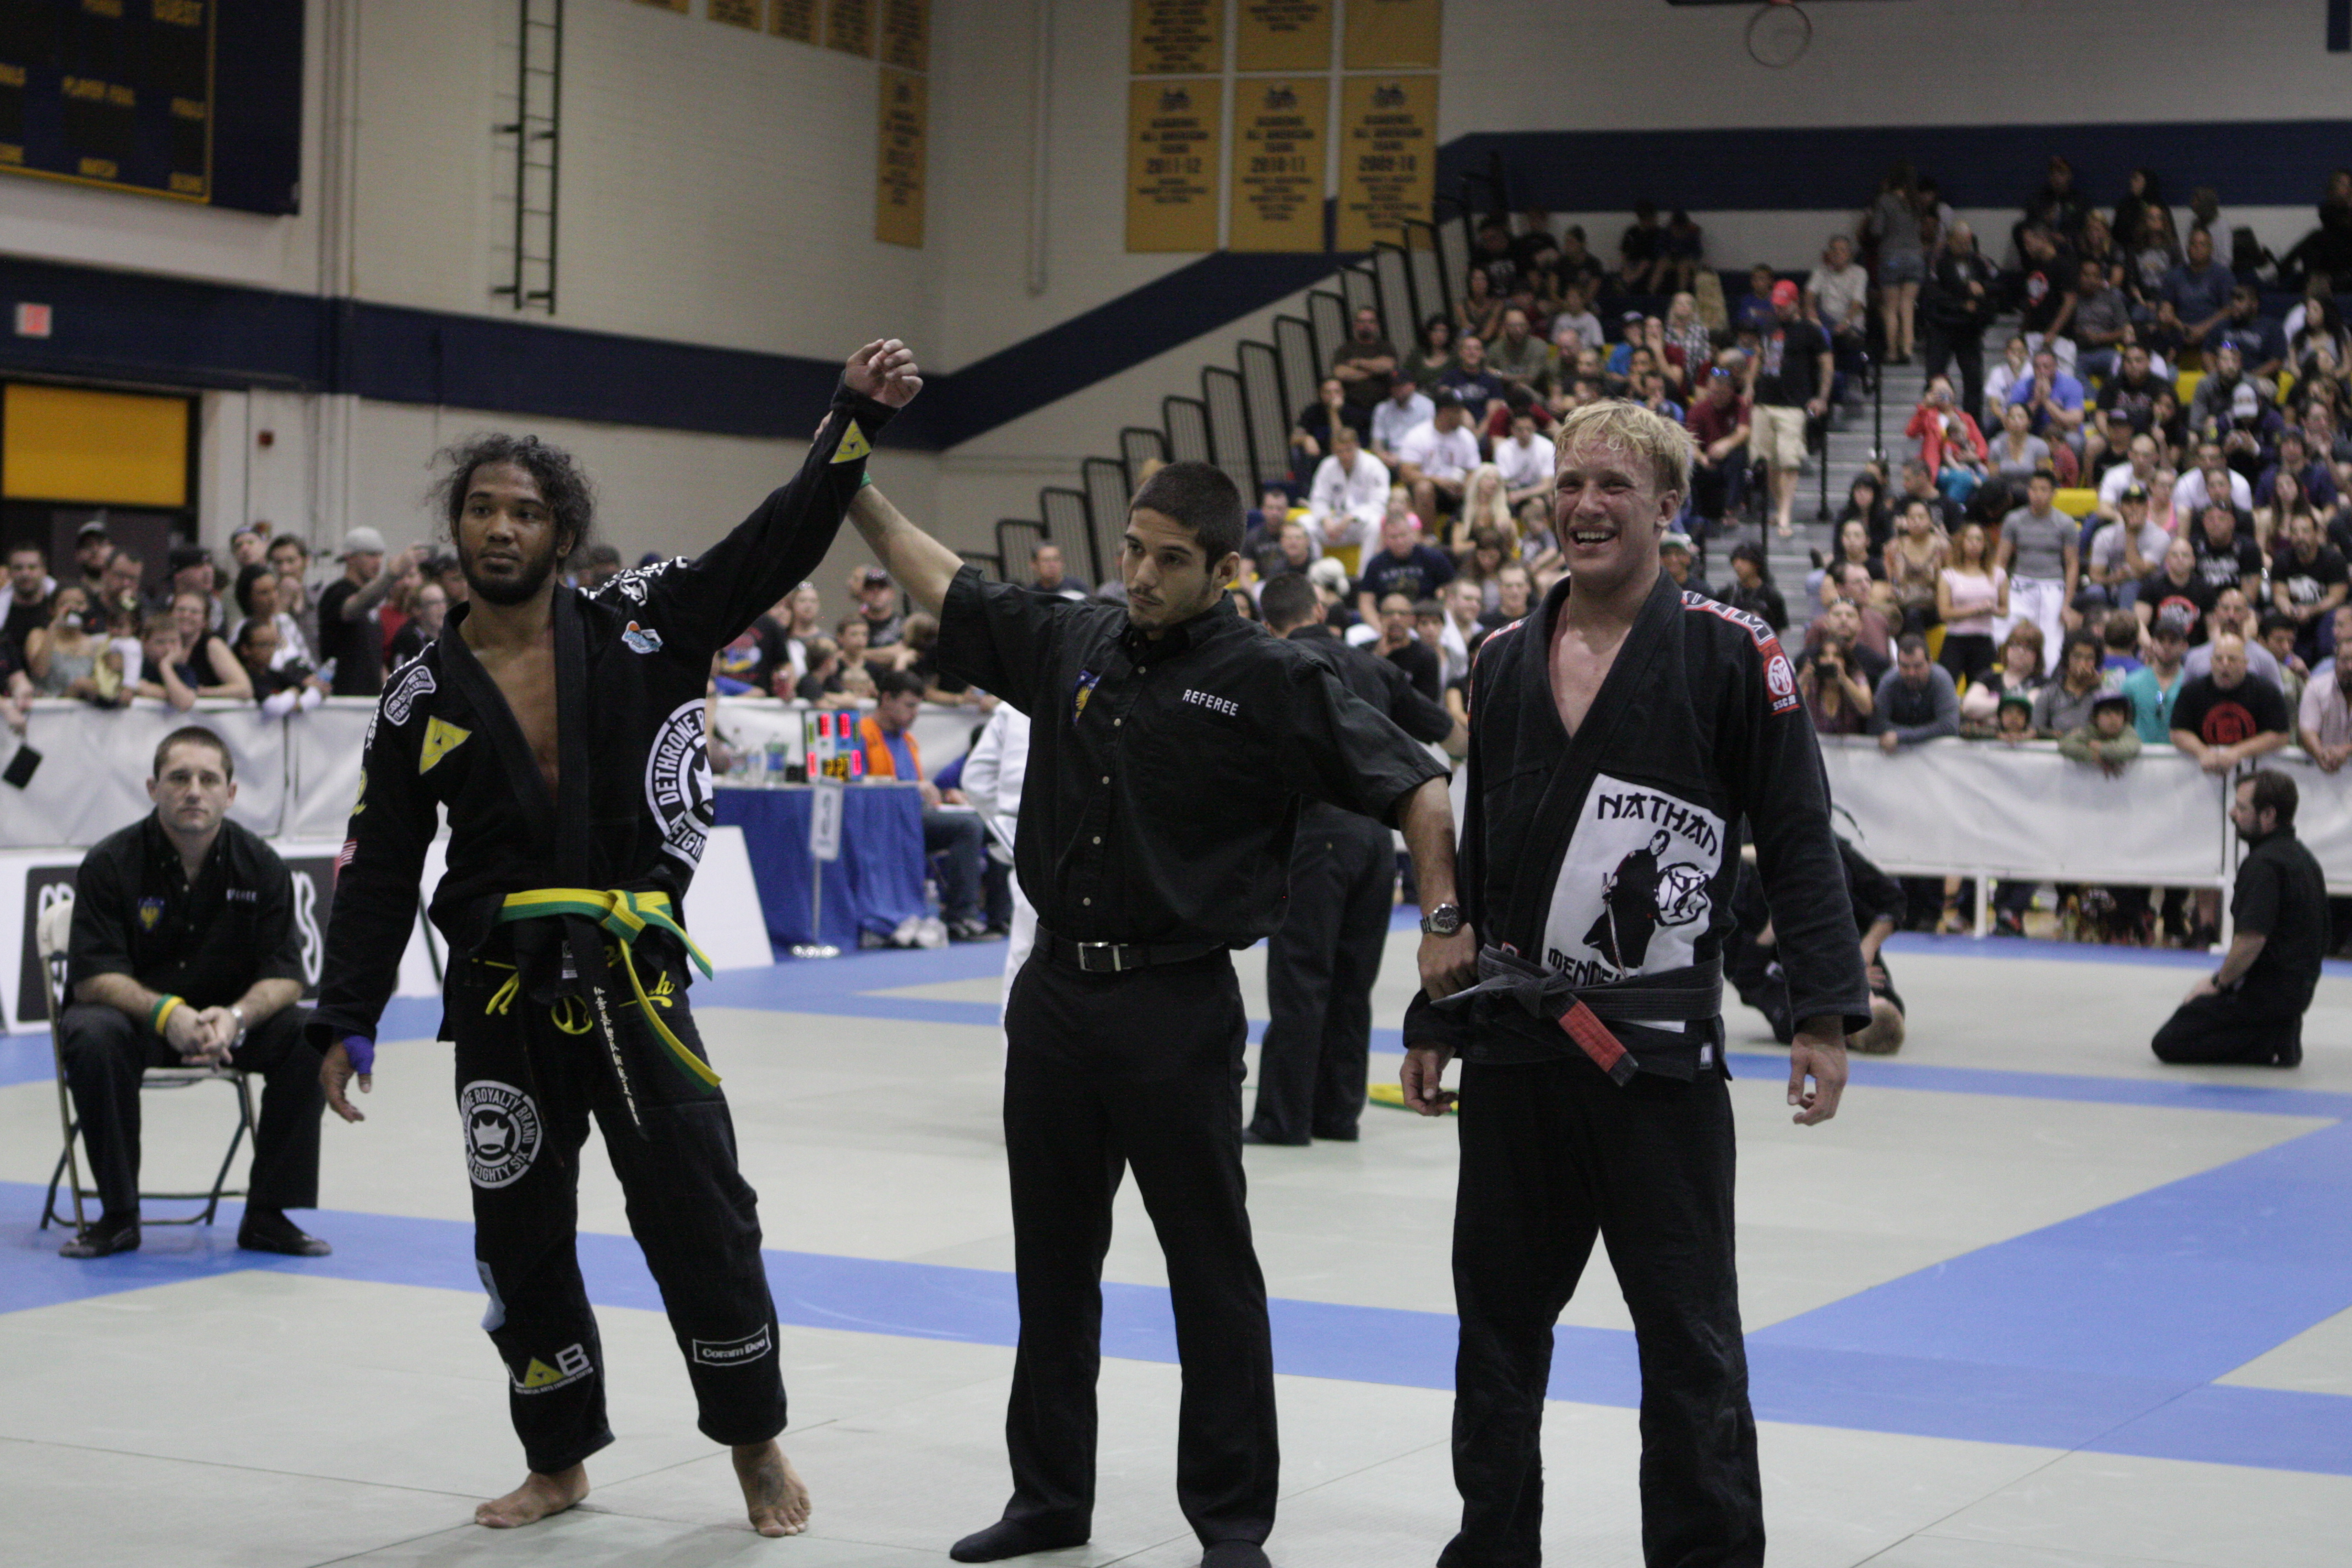 Ben Henderson wins gold. Photo: Personal Archive